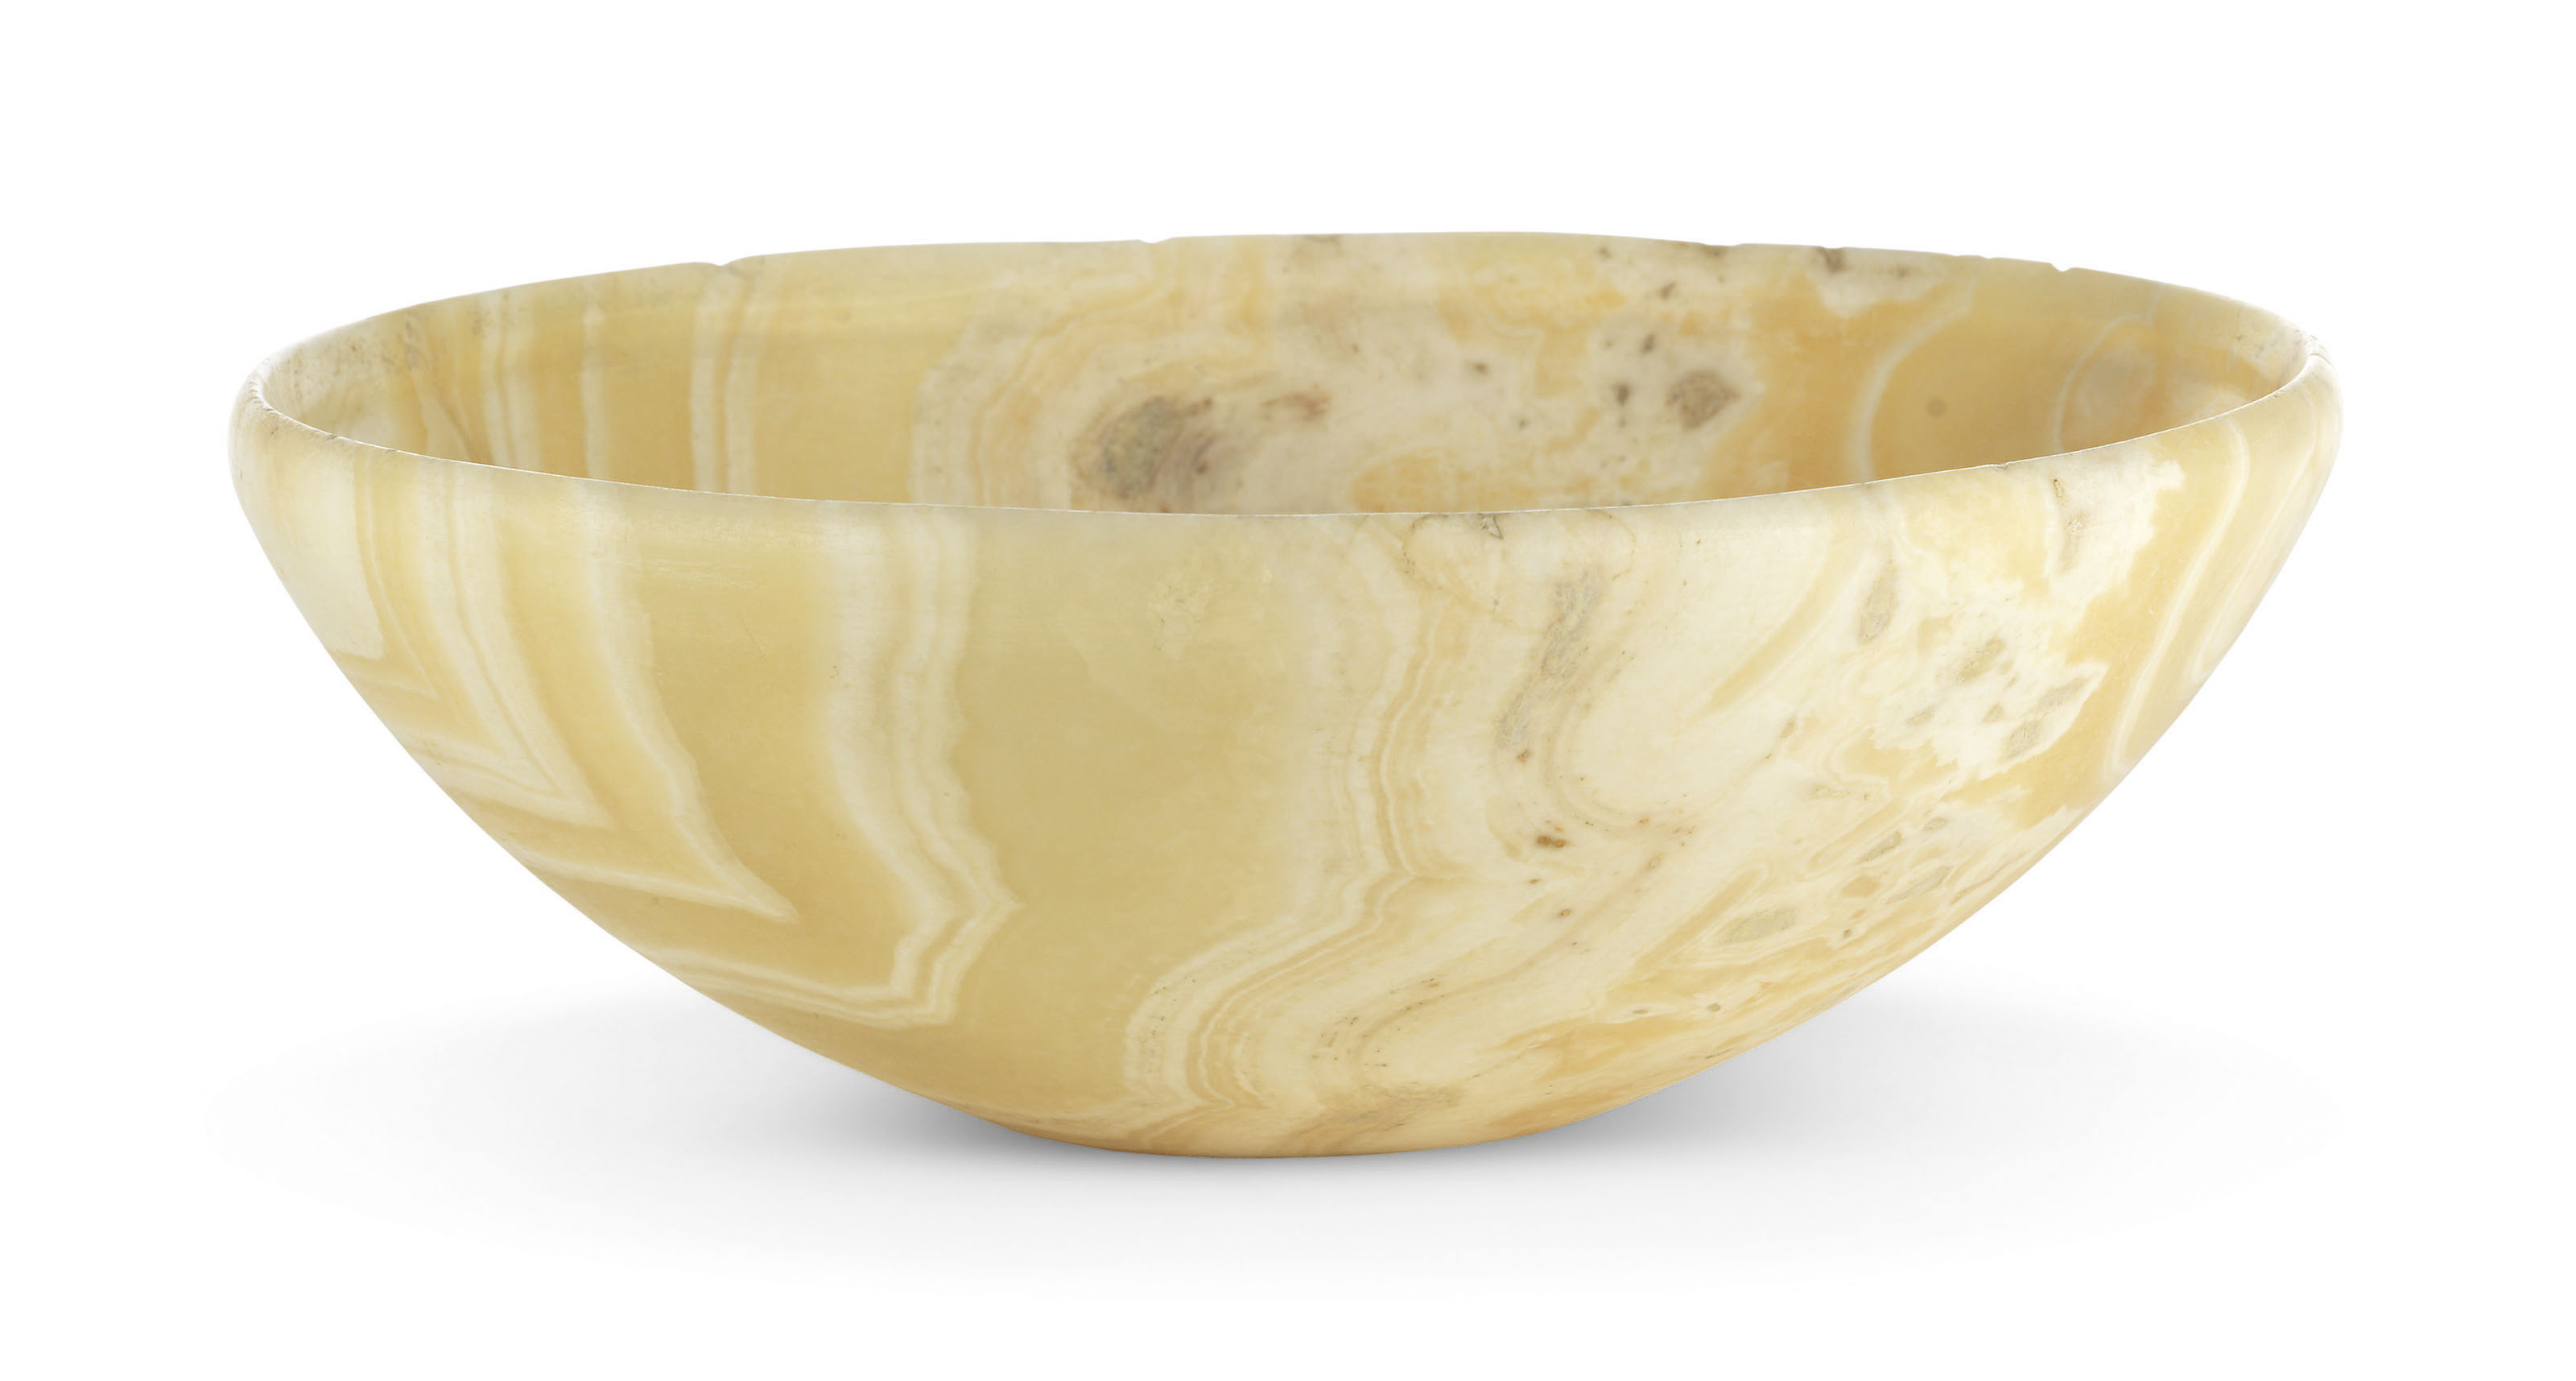 Ancient Egypt and Archaeology Web Site - bowl with feet |Egyption Bowls